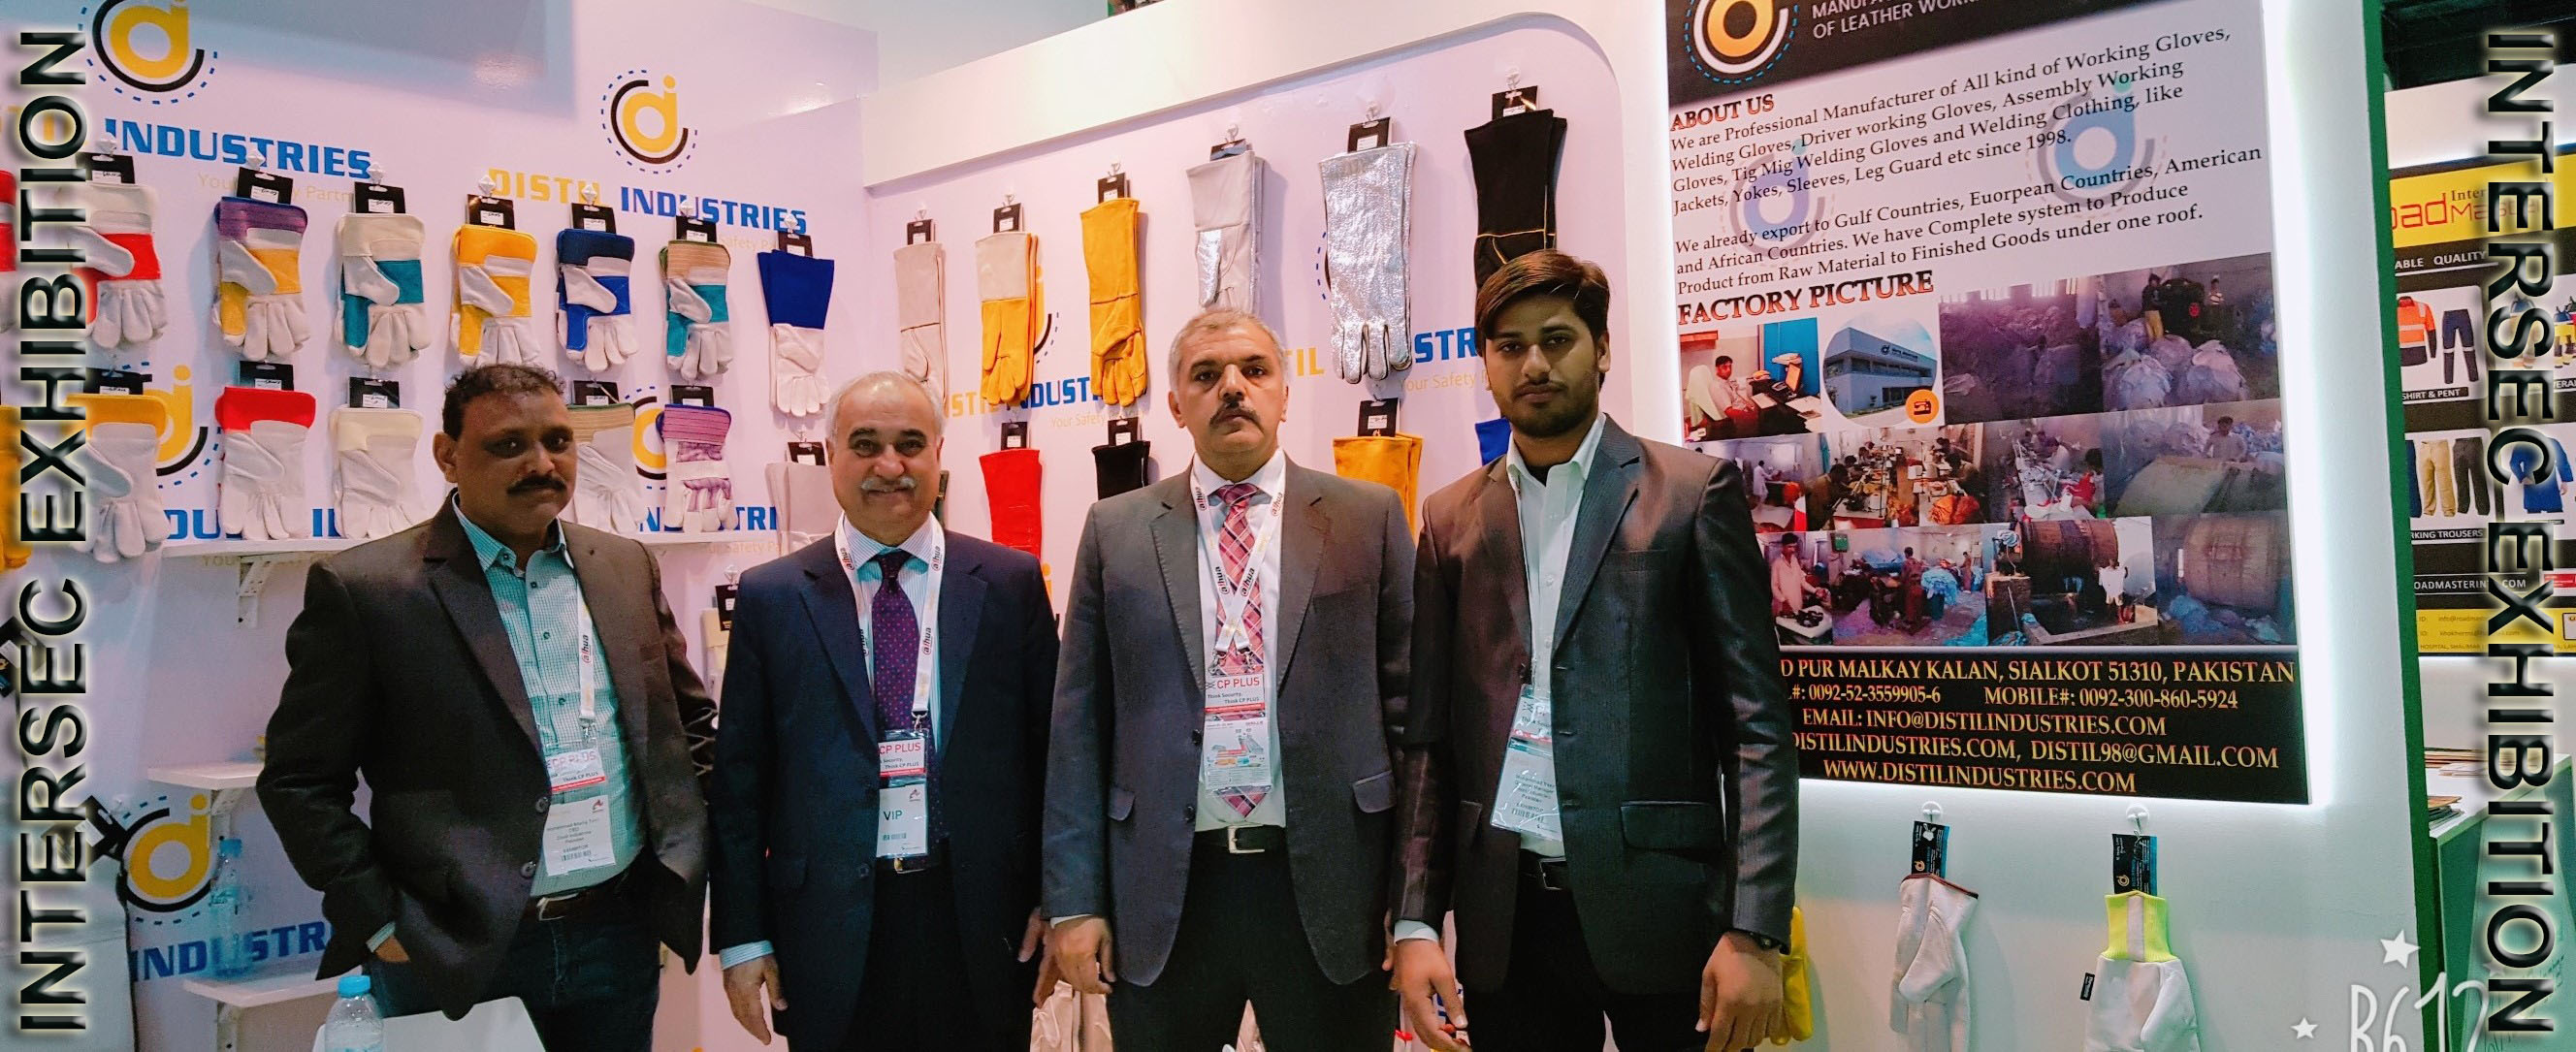 Intersec 2018 2-6